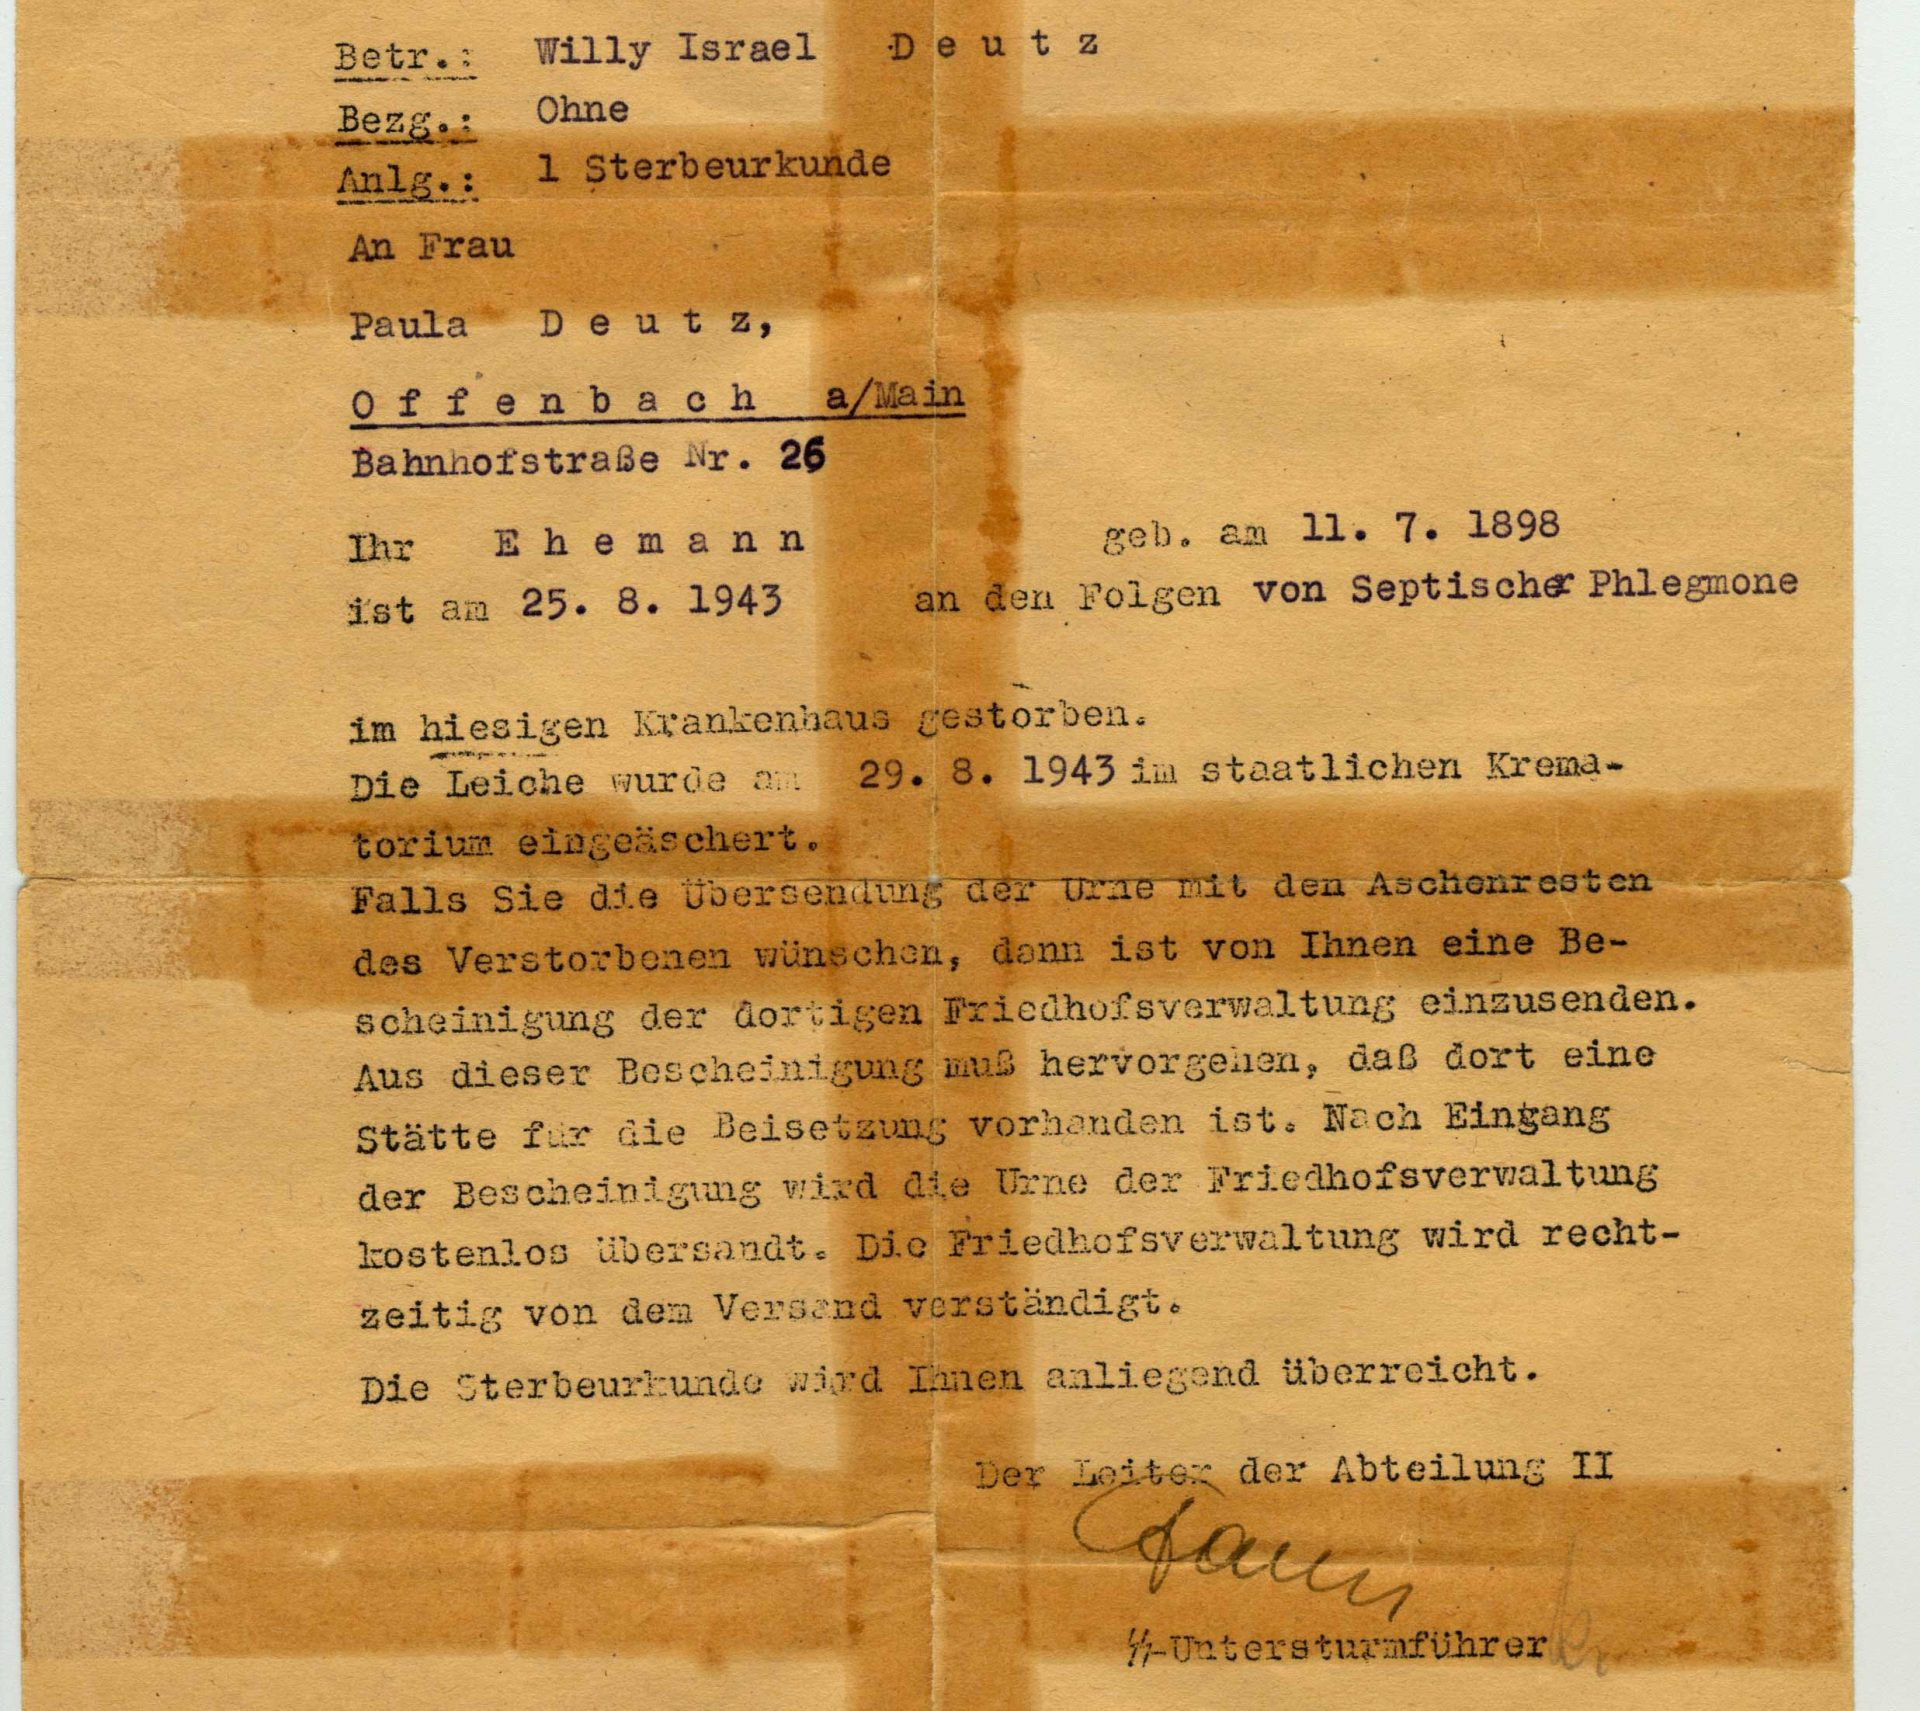 Death certificate of Willy Deutz killed in Auschwitz on August 25, 1943.